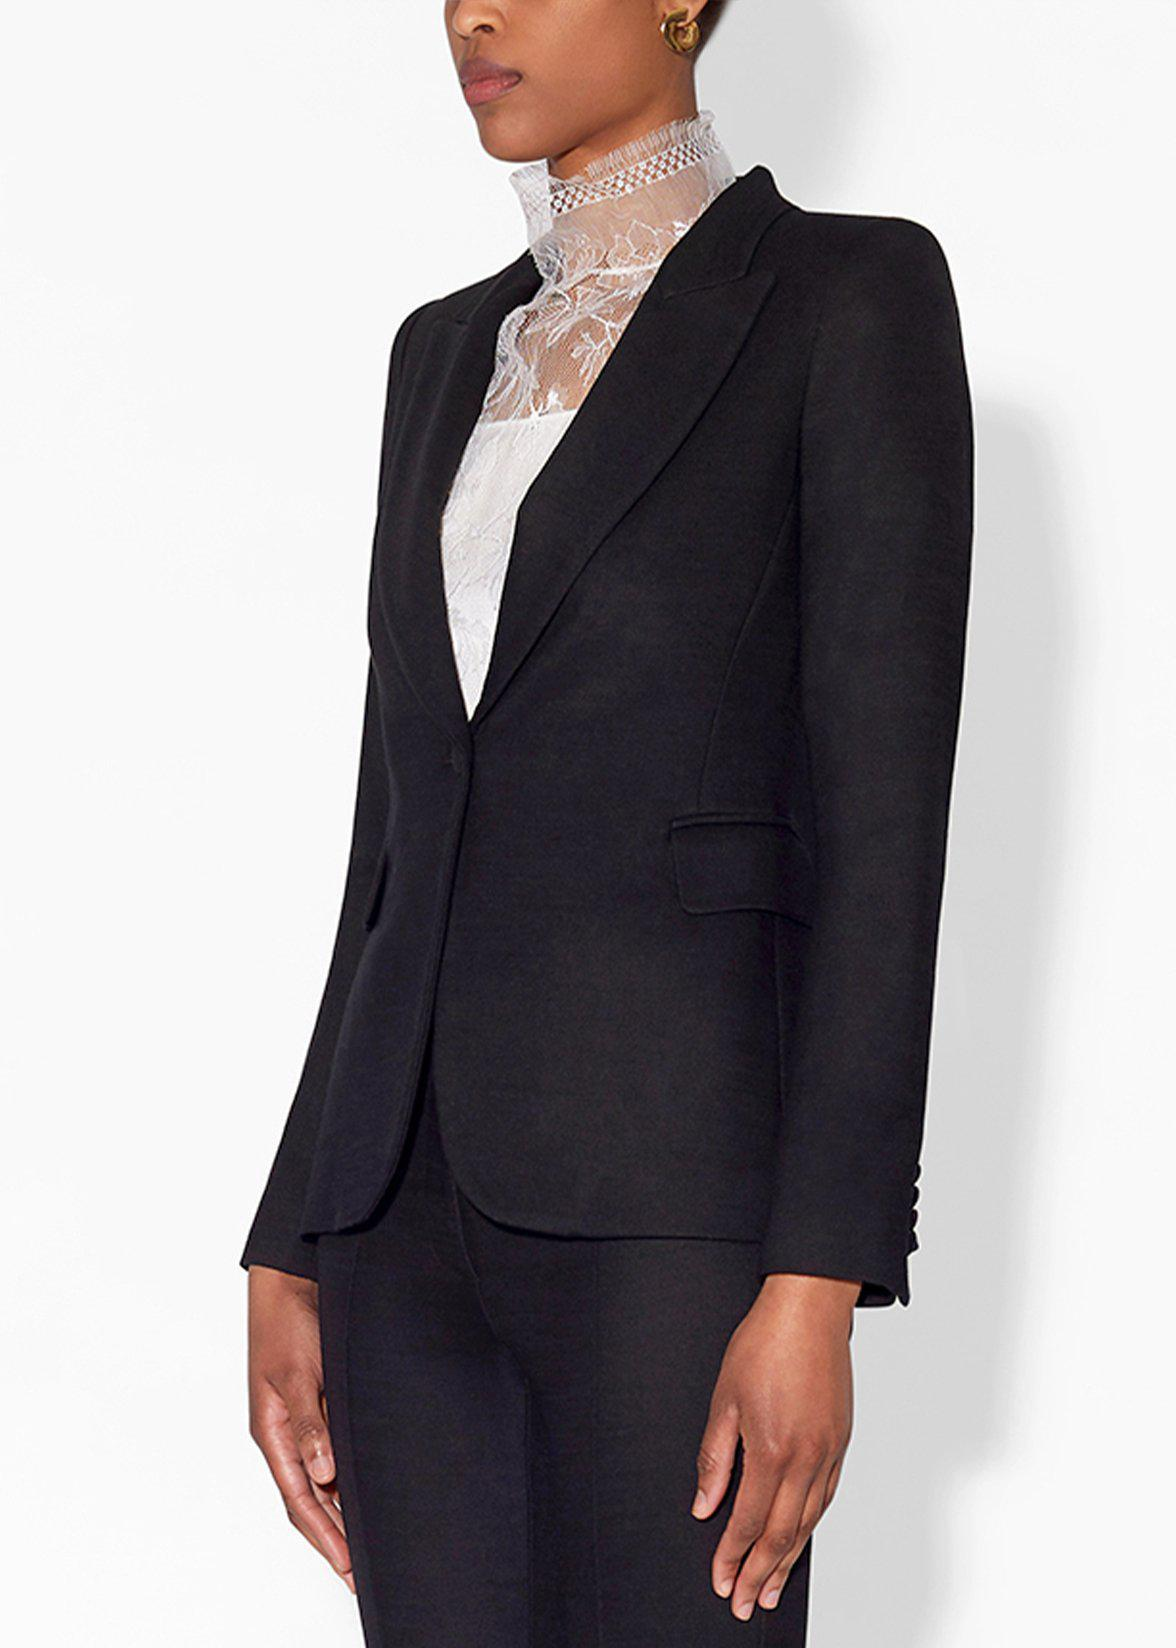 SINGLE BREASTED BLAZER IN DOUBLE FACE WOOL